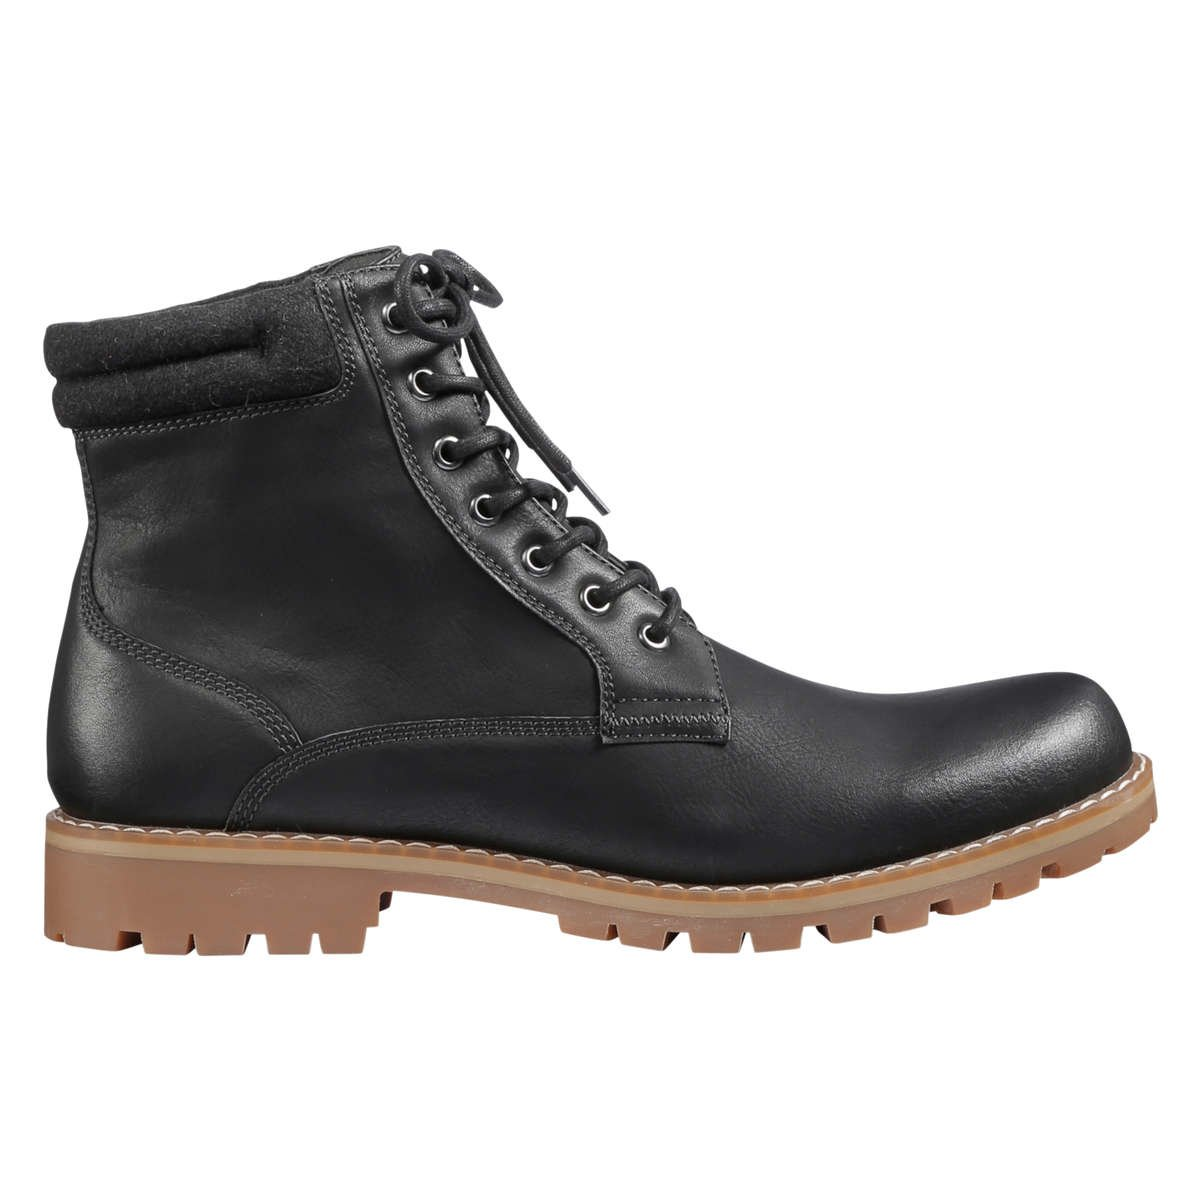 Joe Fresh Mens Winter Shoes